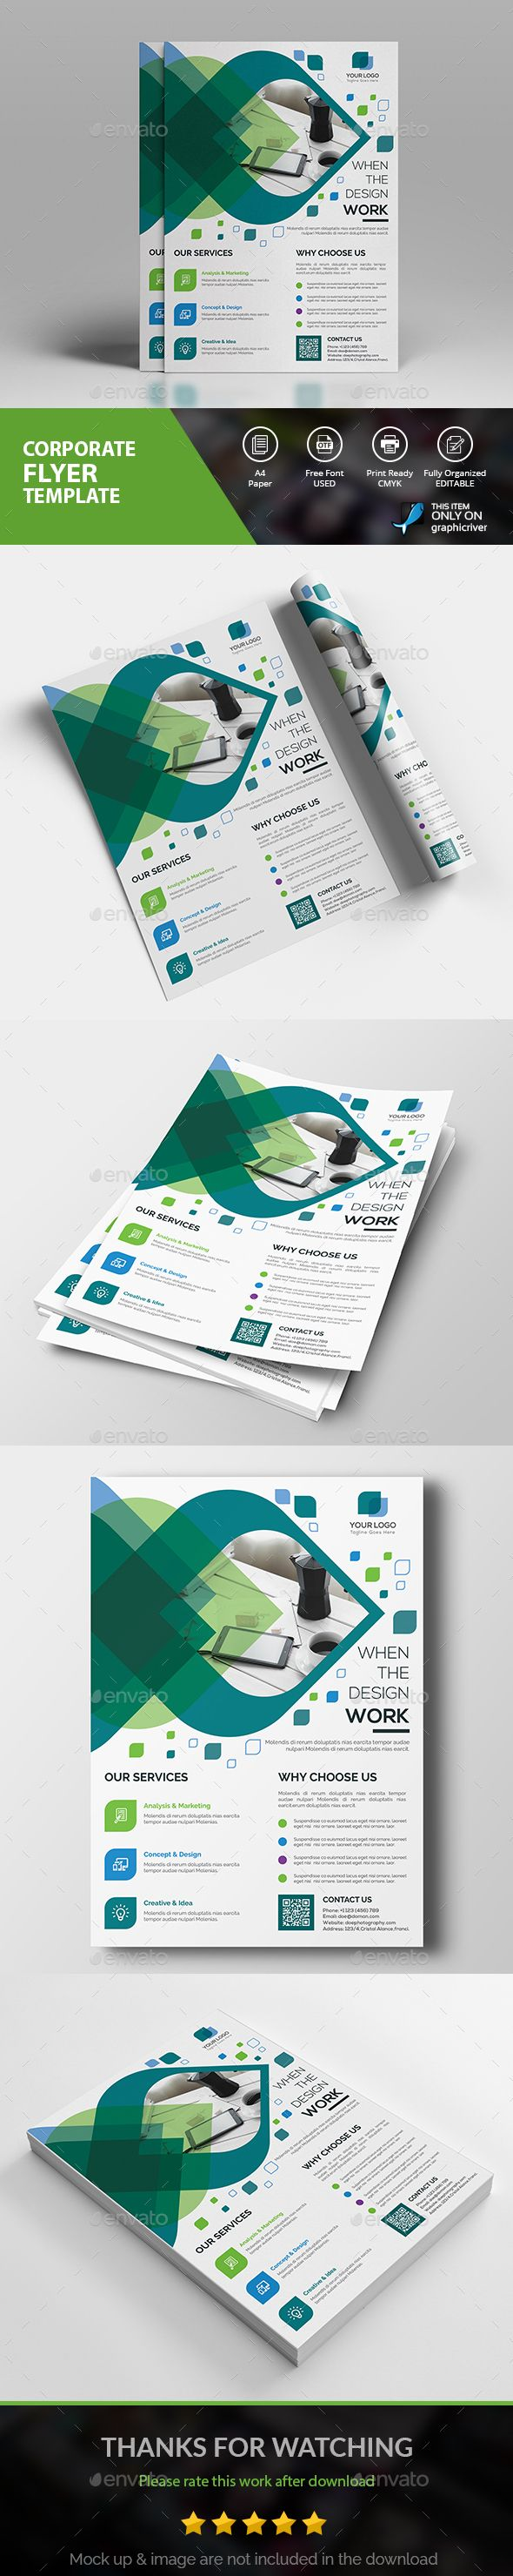 Creative Flyer — AI Illustrator #clean design #corporate new flyer • Download ➝ https://graphicriver.net/item/creative-flyer/18864743?ref=pxcr